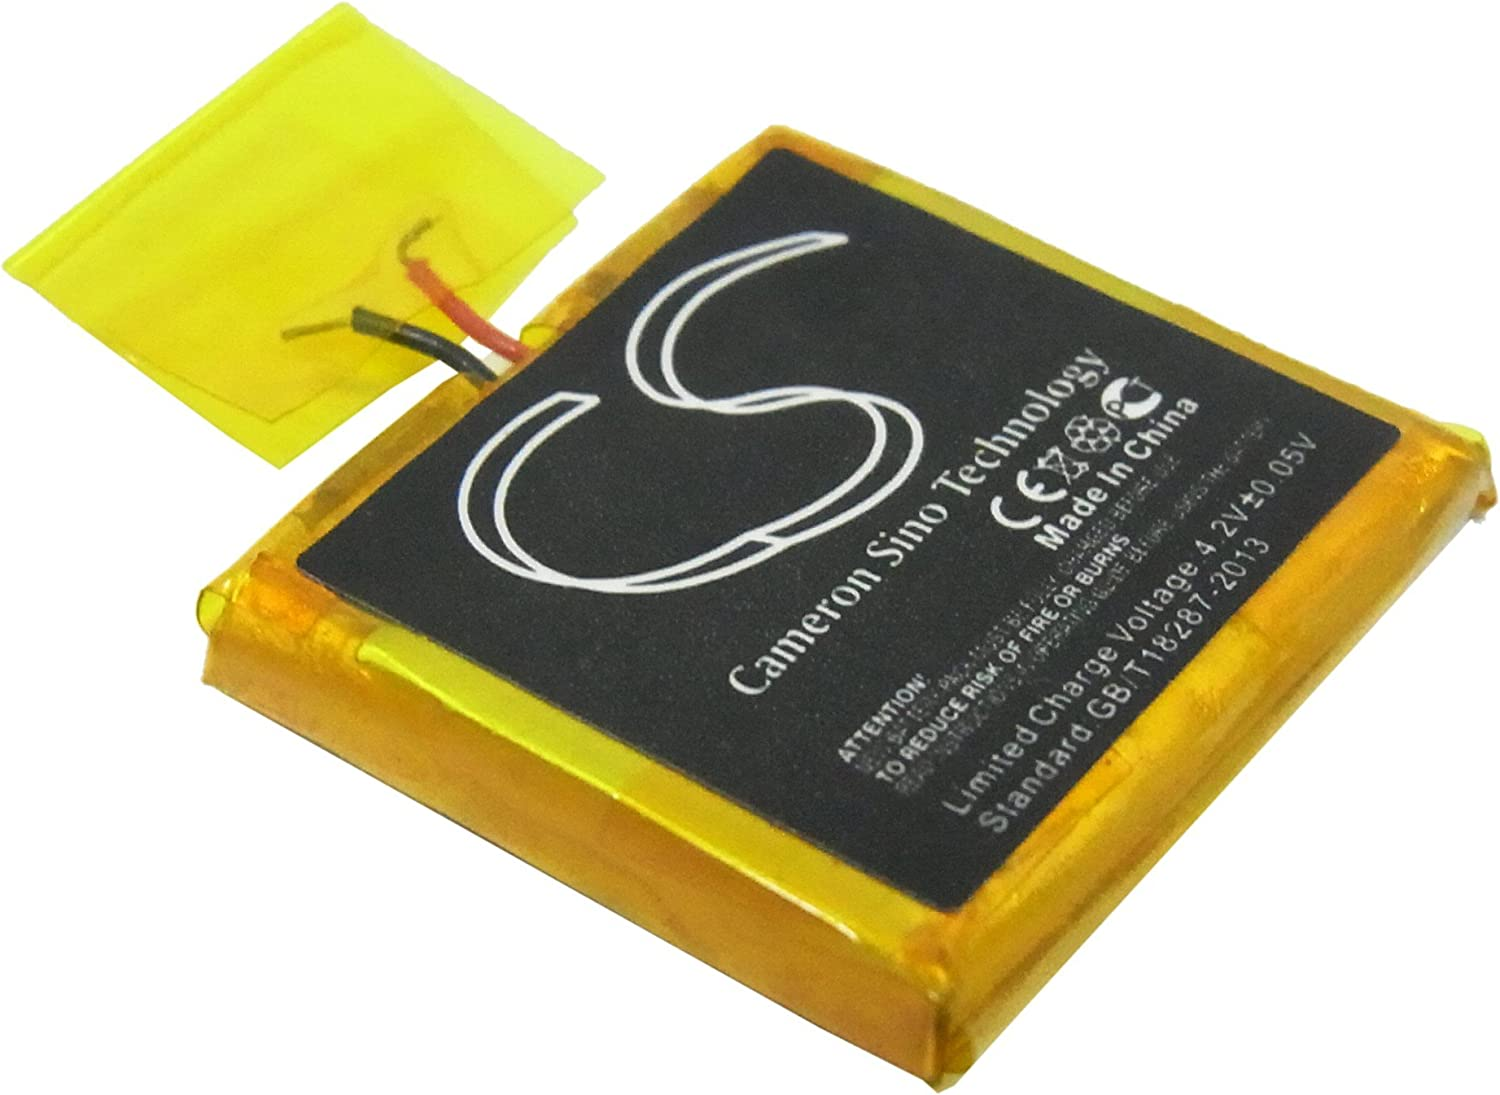 Cameron Super intense SALE Sino 100mAh Replacement Battery G iPod 2021 model for Shuffle Apple